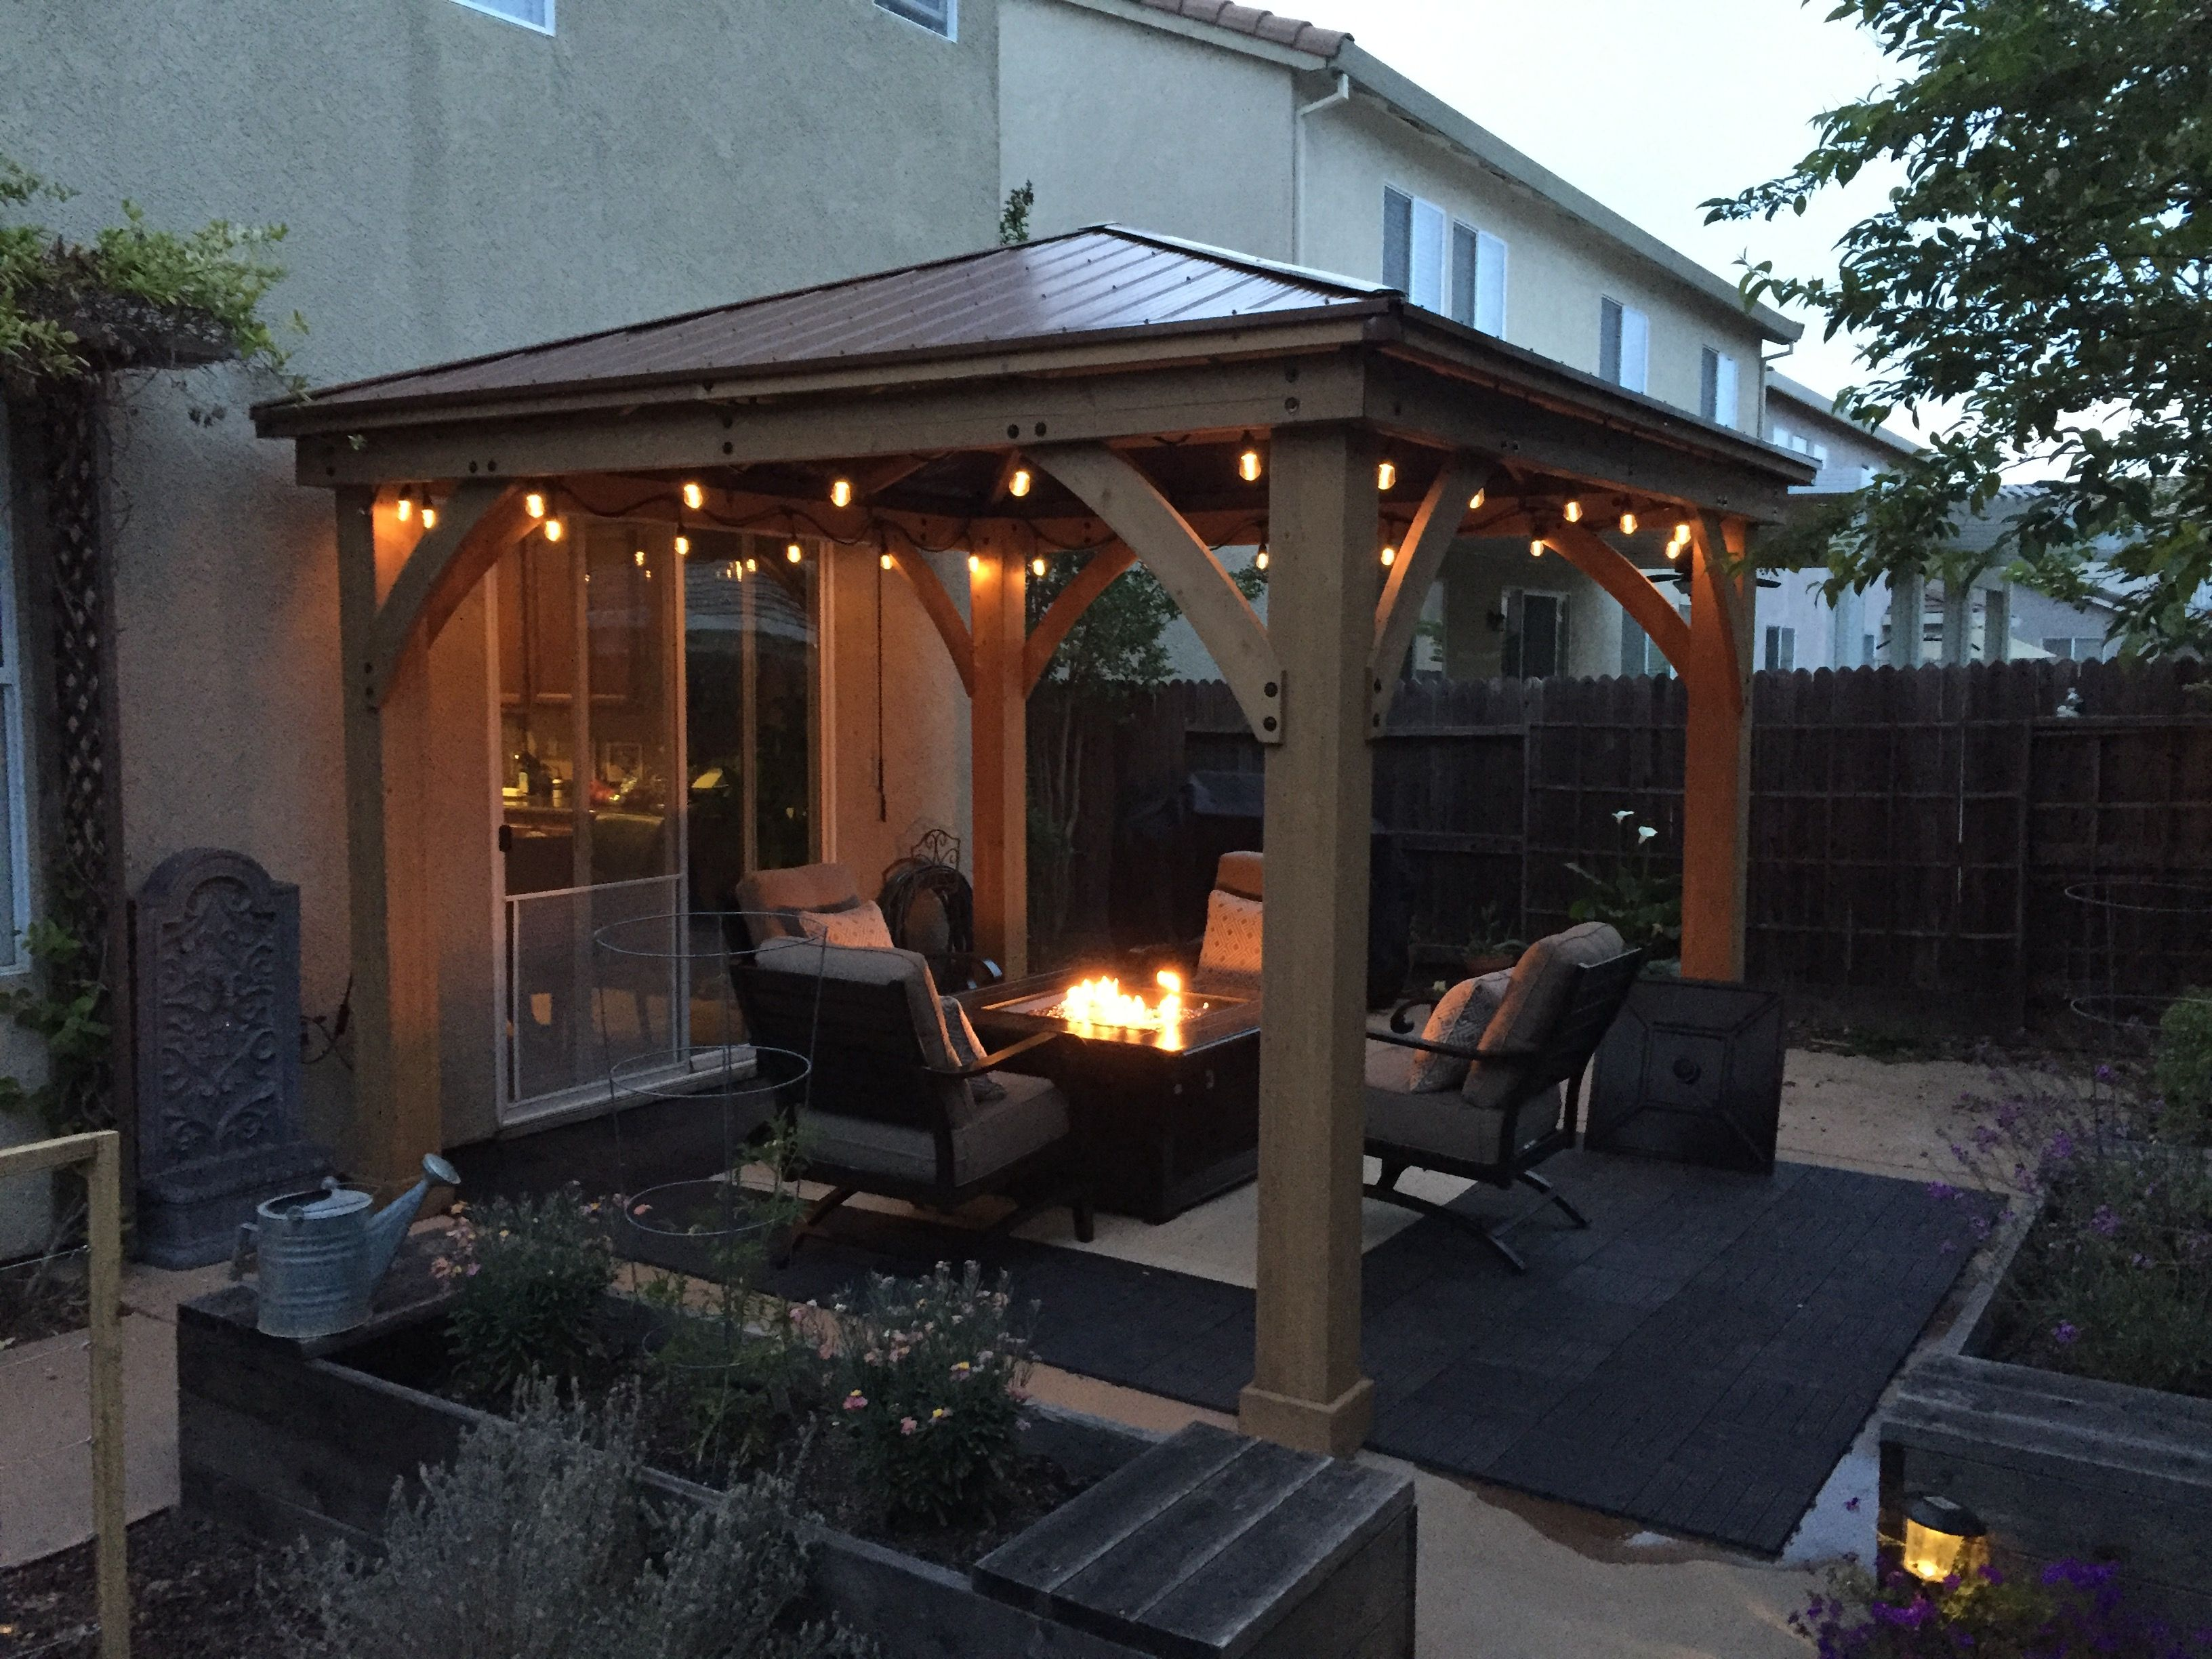 Yardistry 12x12 cedar gazebo from Costco This thing is amazing